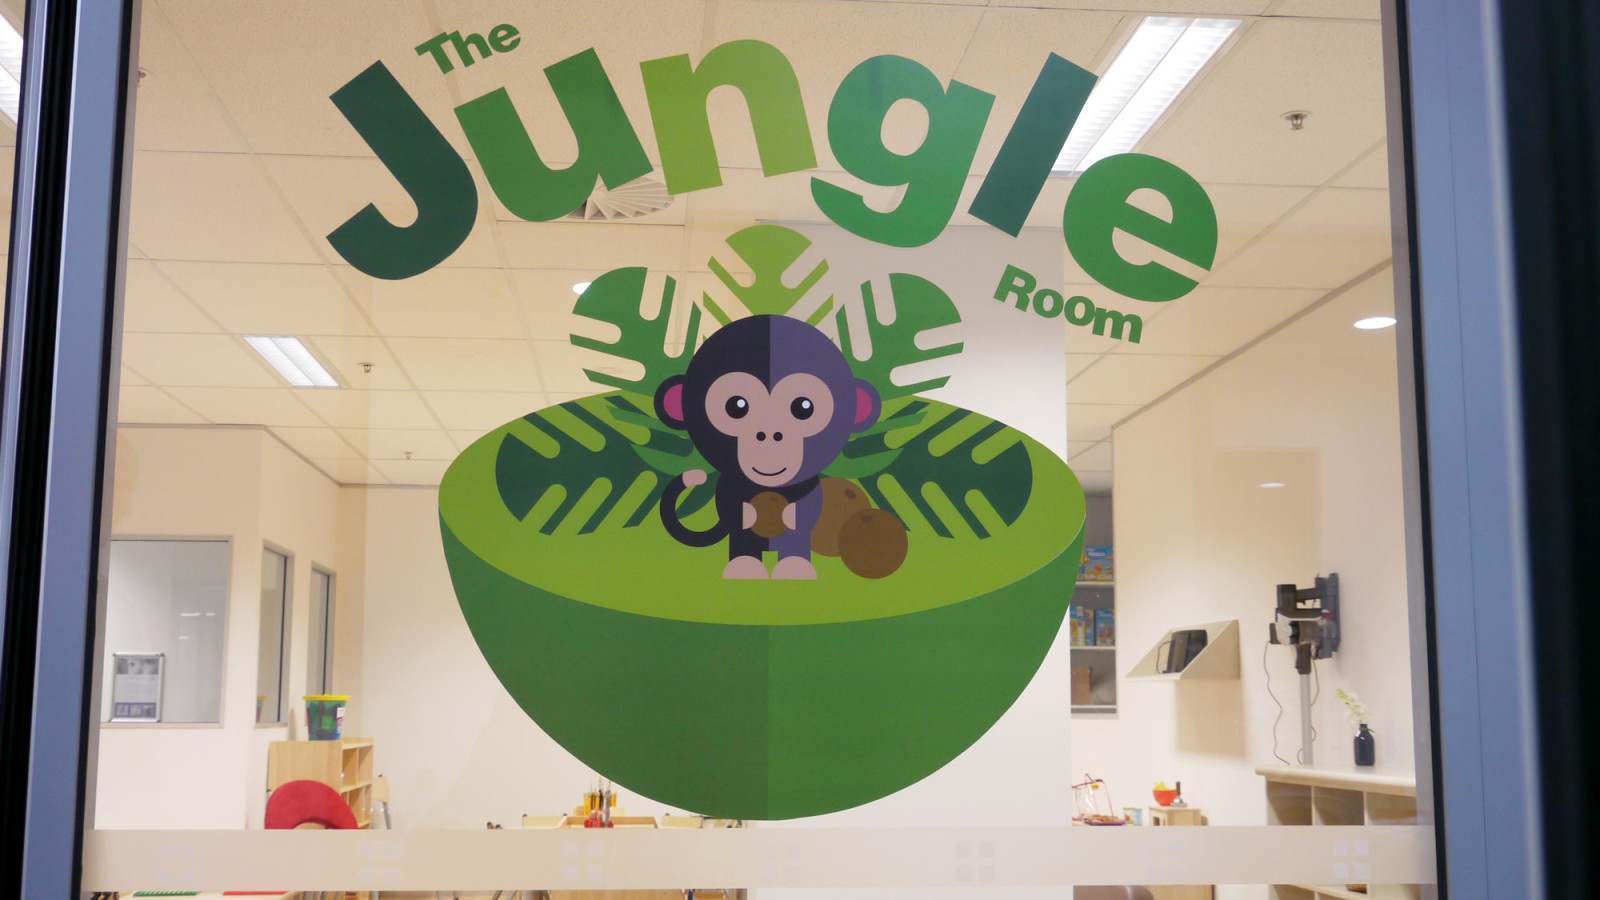 the-art-of-wall-child-care-center-jungle-room-1-vinyl-title-1600x900